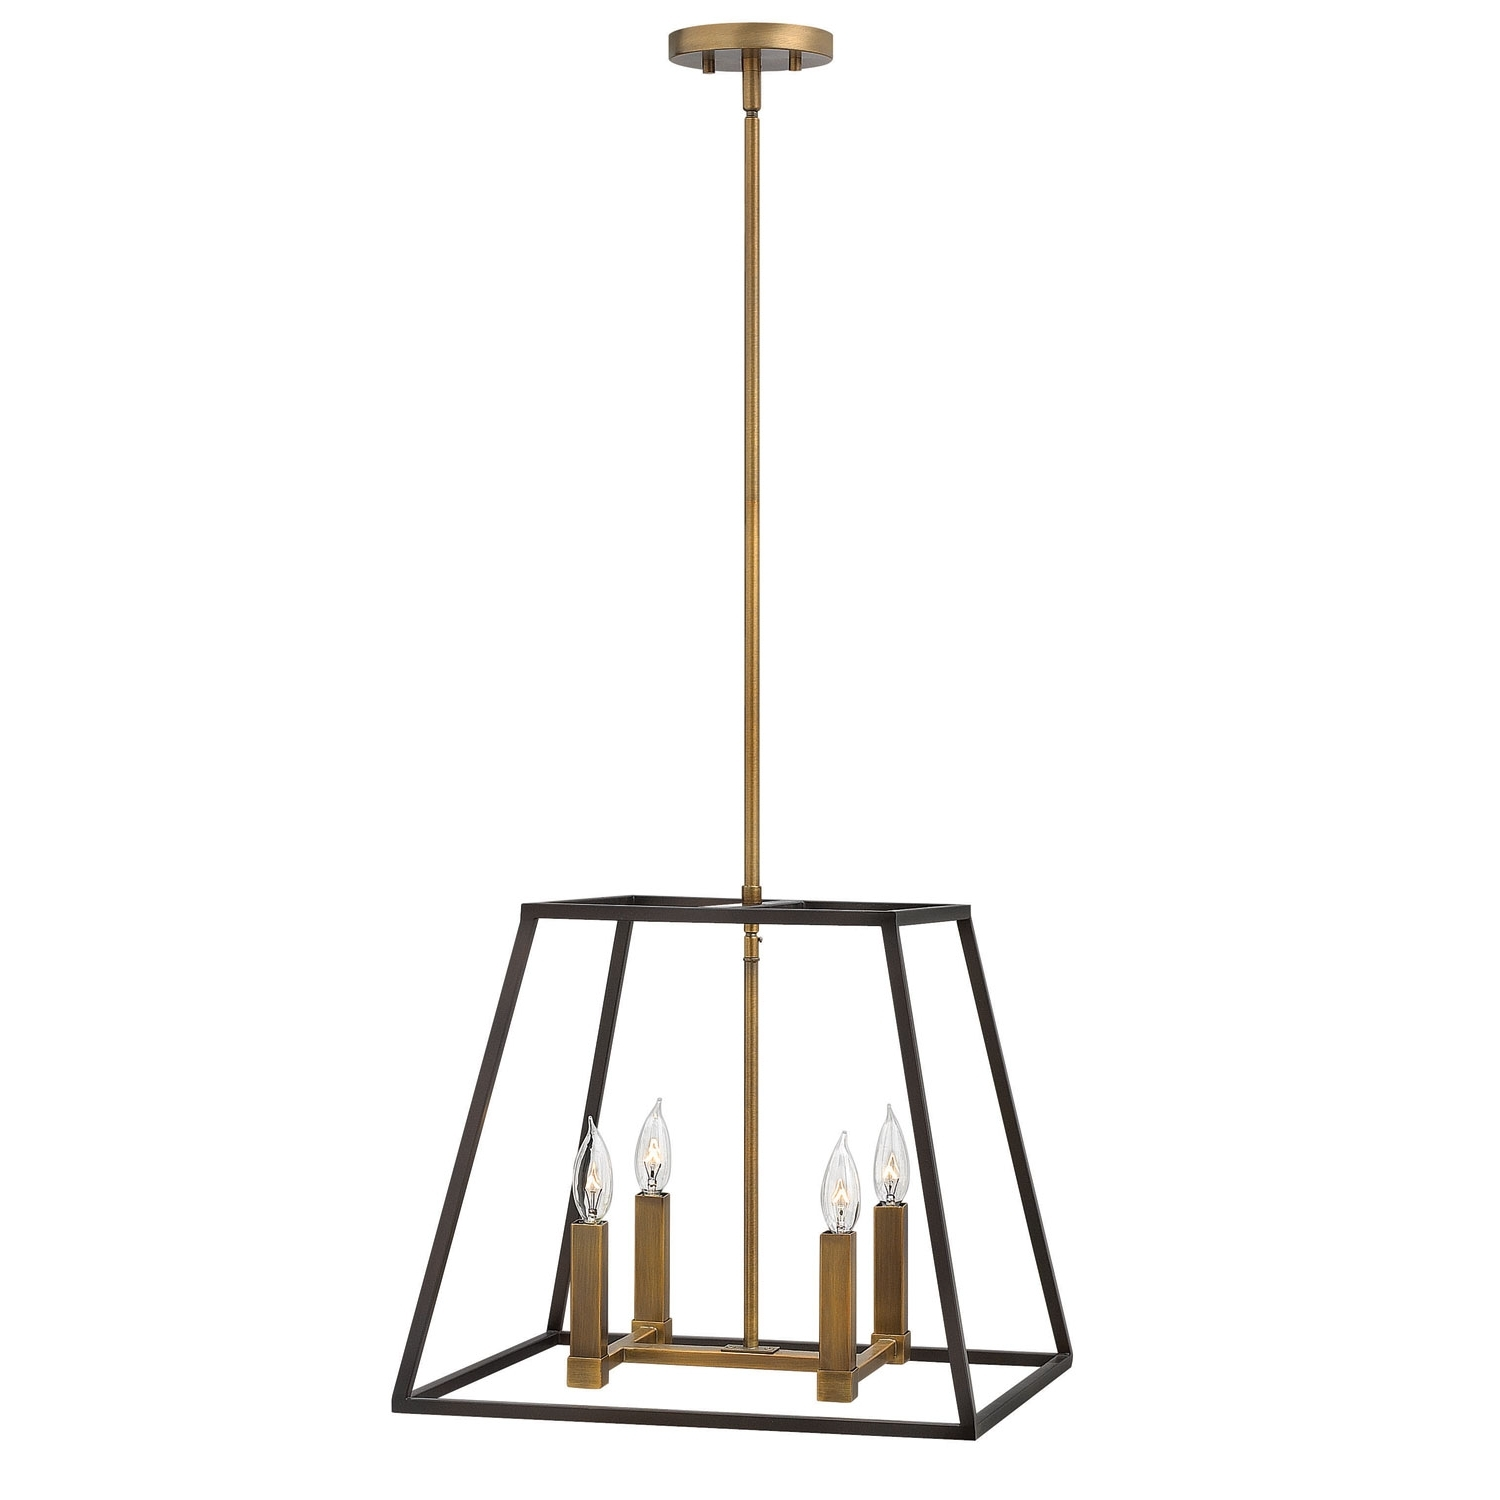 Popular Hinkley Fulton Bronze Four Light Foyer Pendant On Sale Inside Modern Latern Hinkley Lighting (View 12 of 20)